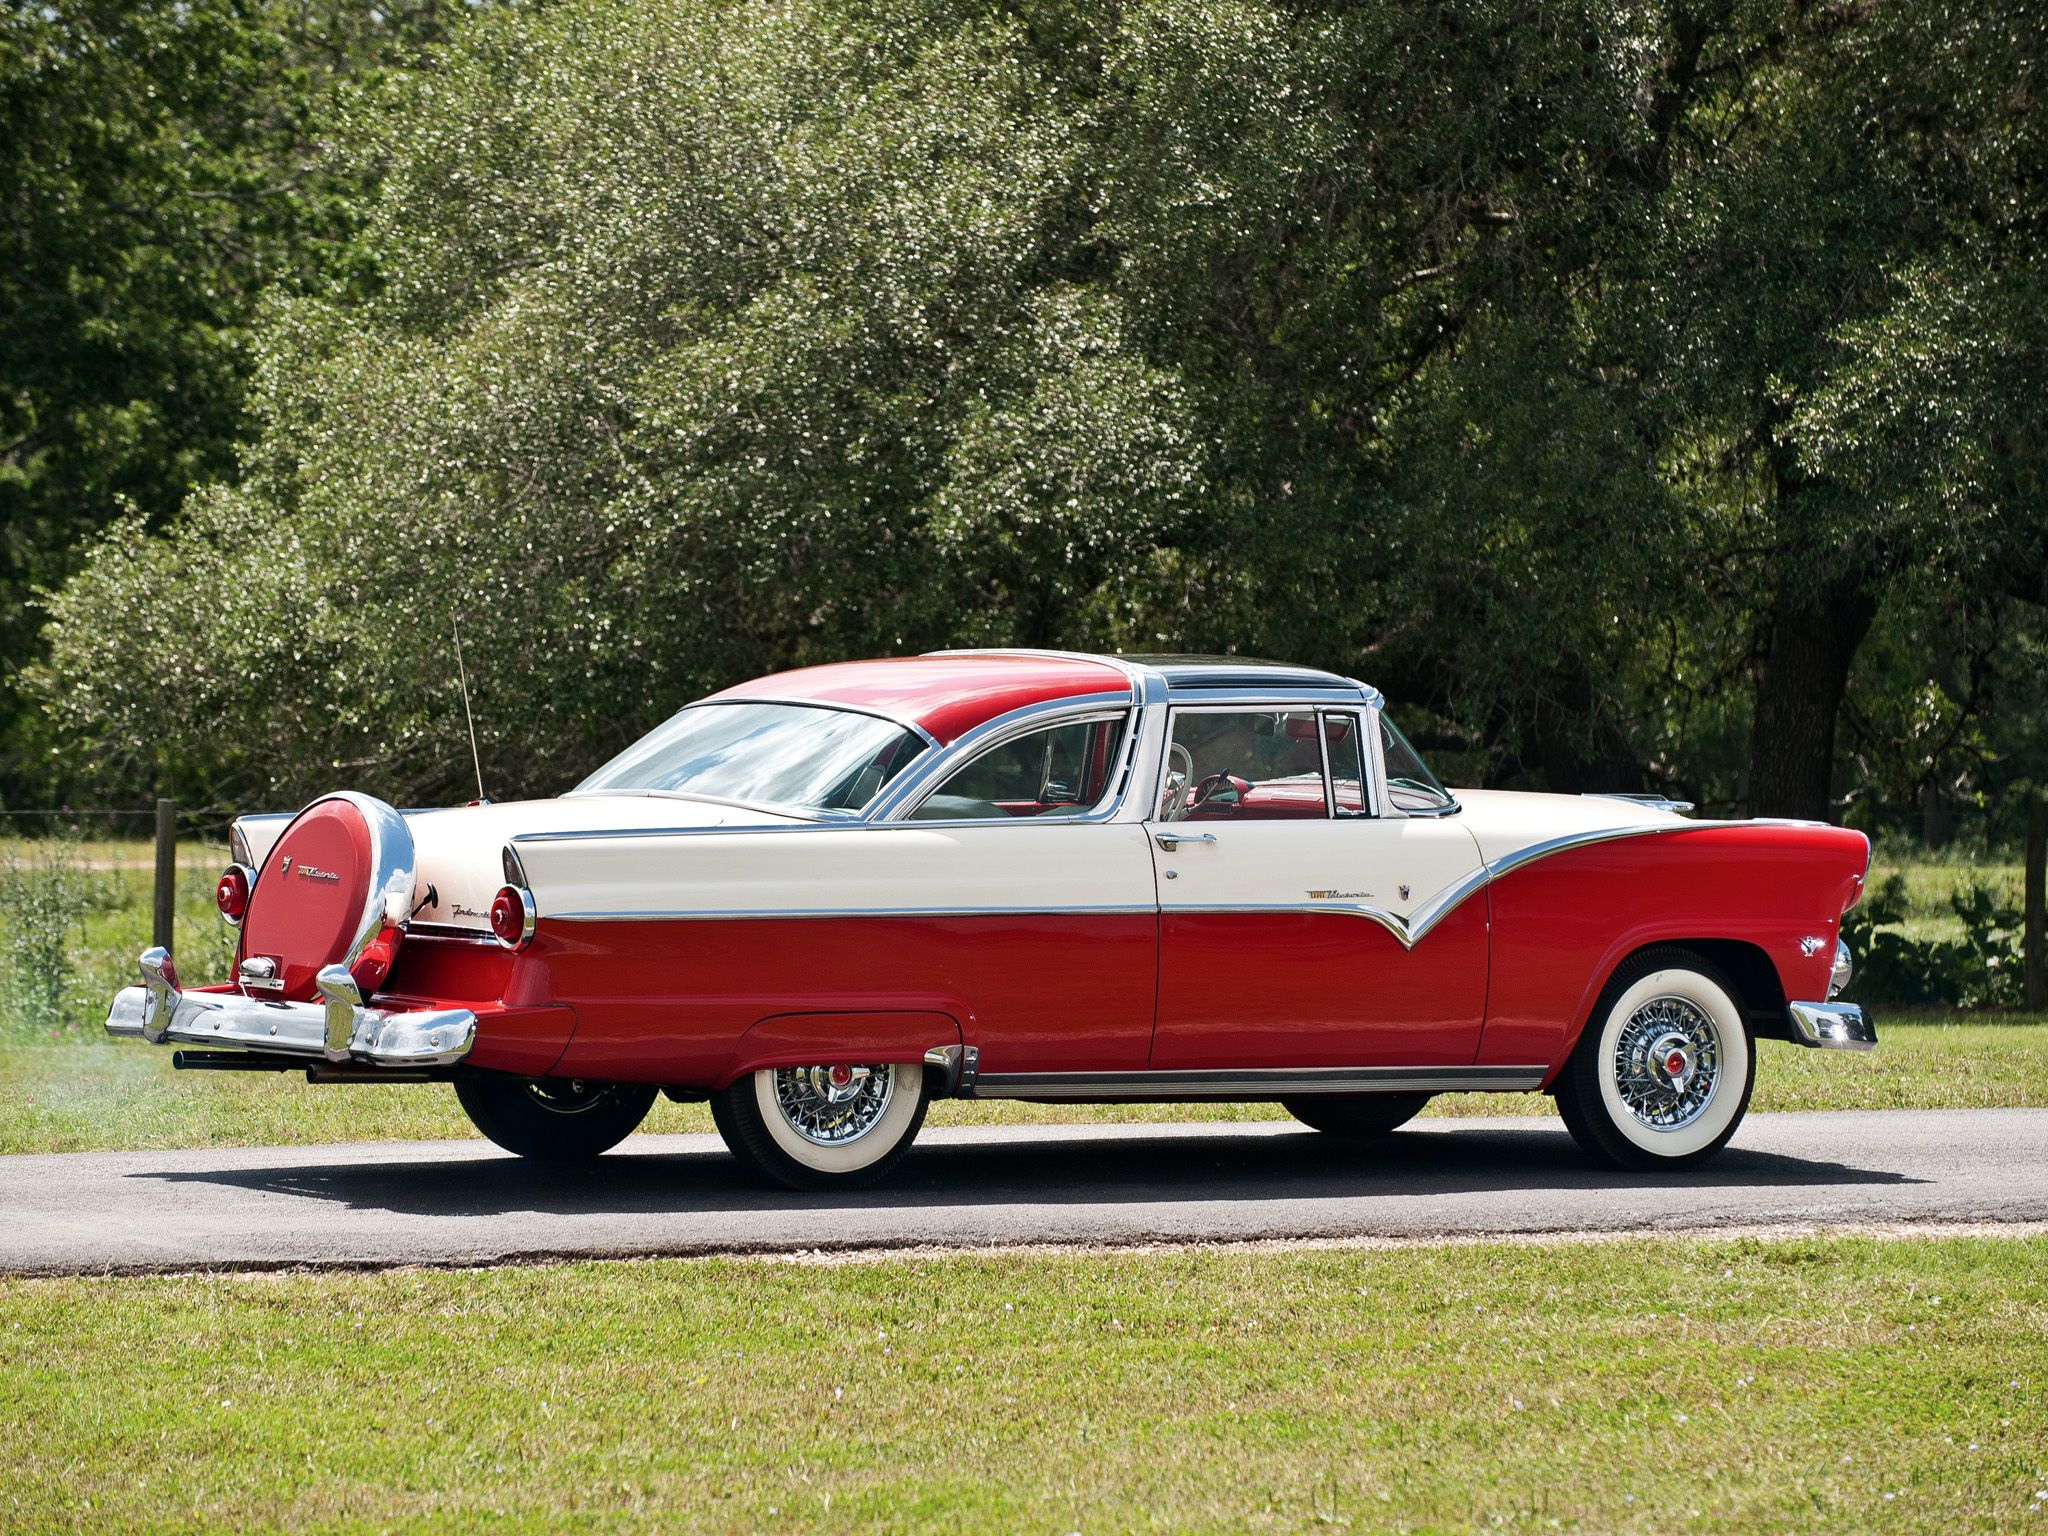 1955 Ford Fairlane Crown Victoria My Aunt Had The Same Color Crown Victoria She Purchased It Brand New Ford Fairlane Fairlane Classic Cars